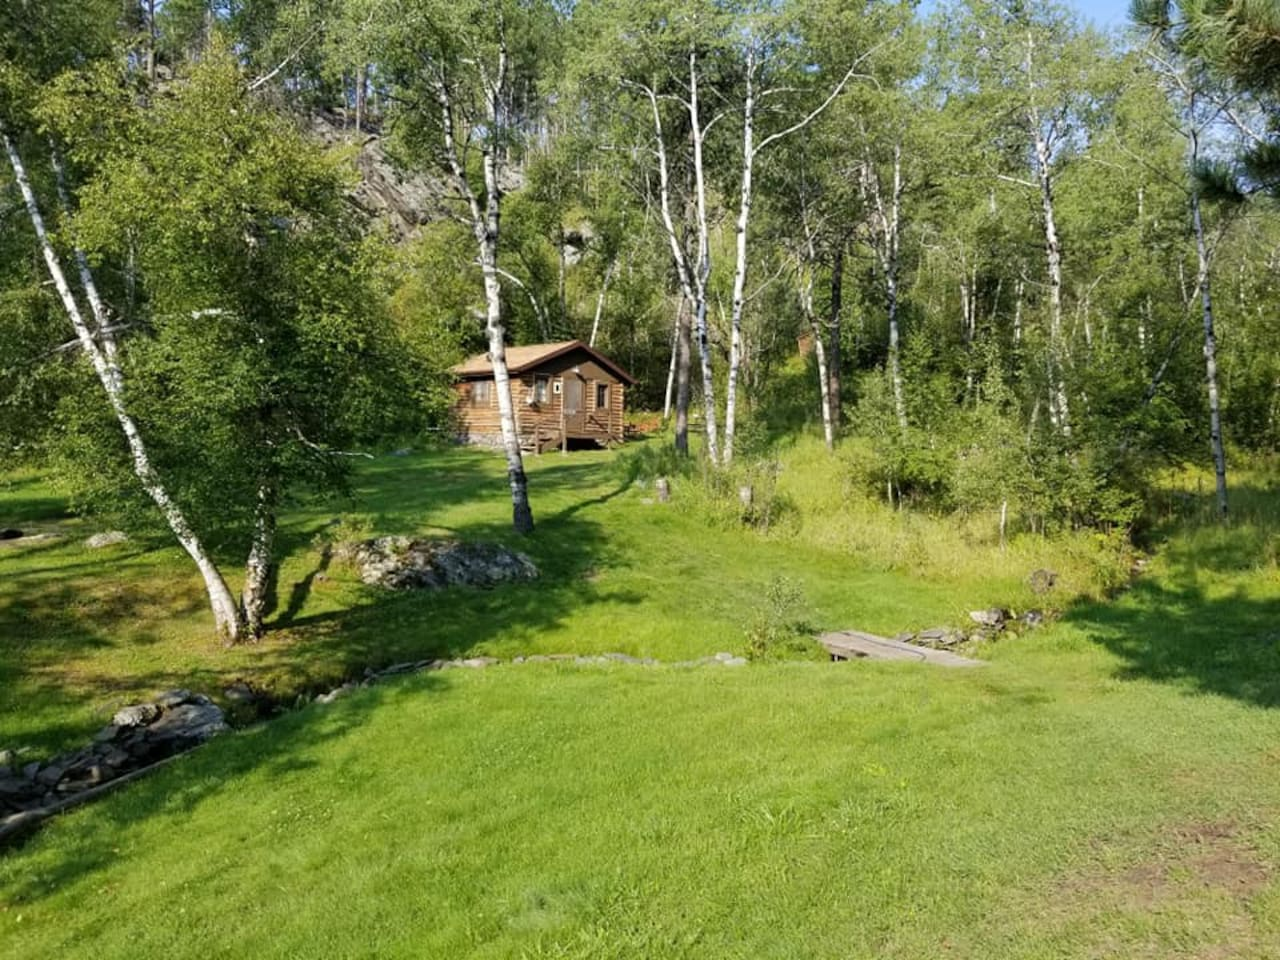 Truly nestled in the woods.  We are surrounded by the forest service on 3 sides. No pavement or concrete jungle here.